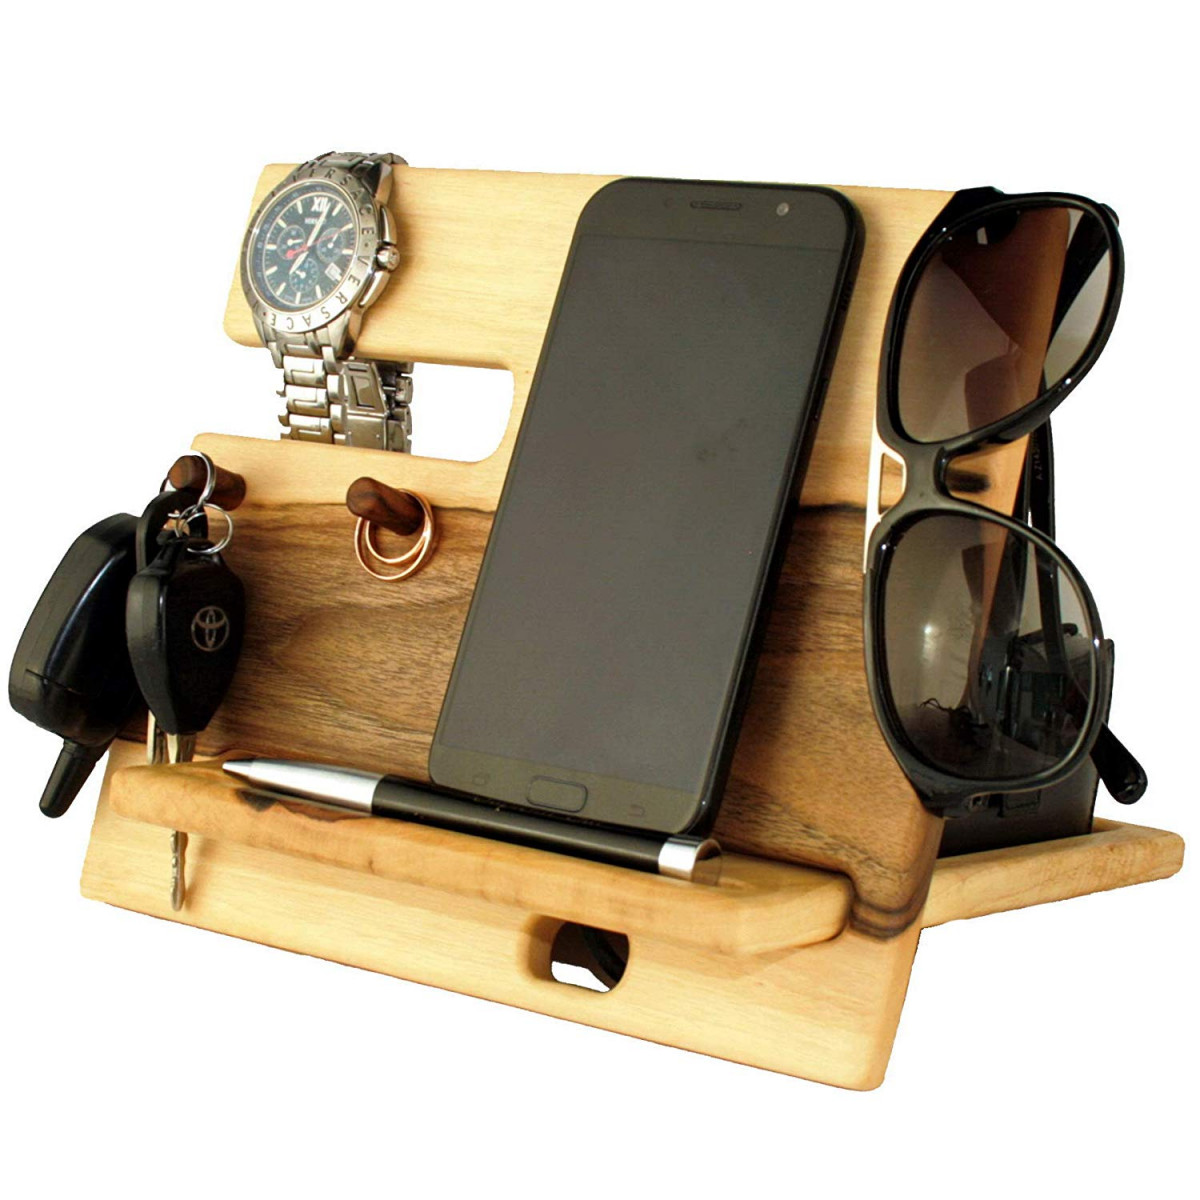 Walnut Light Wood Cell Phone Stand Nightstand Charging Dock Watches Holder Mens Wooden Bed Side Valet Tray Organizer Desk Docking Station Smart